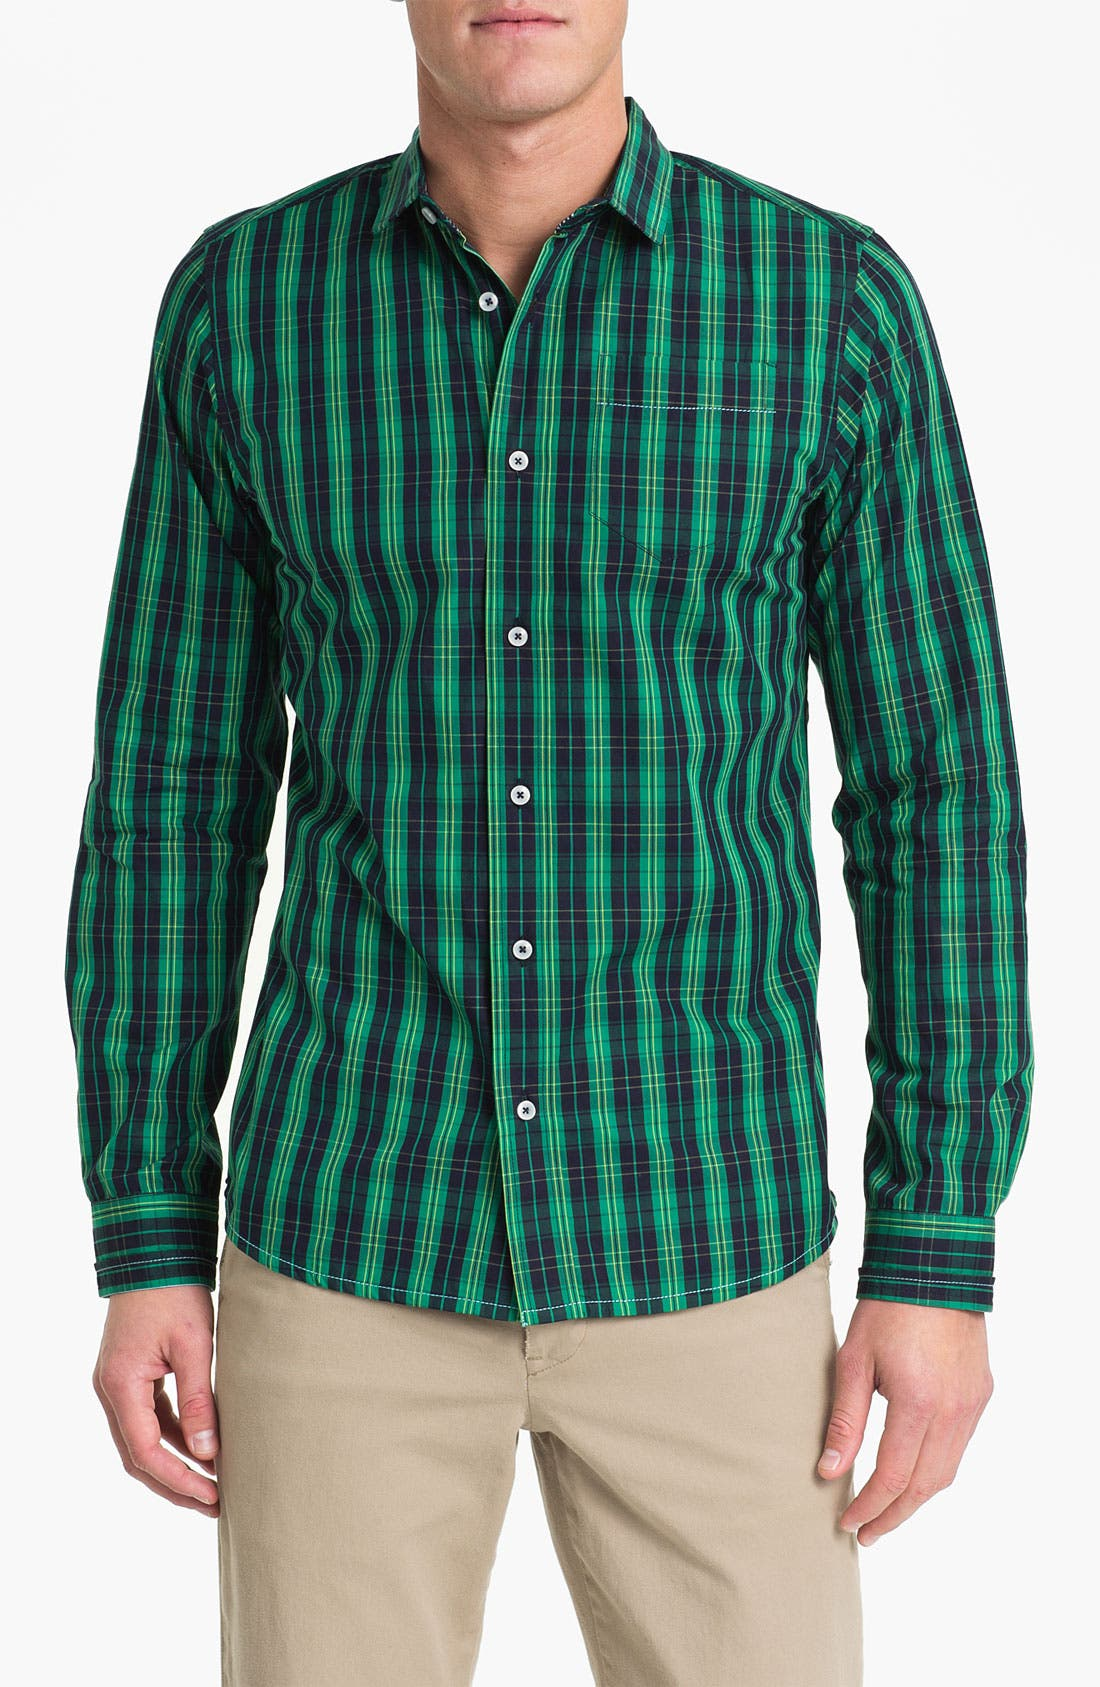 Alternate Image 1 Selected - Descendant of Thieves Tartan Plaid Woven Shirt